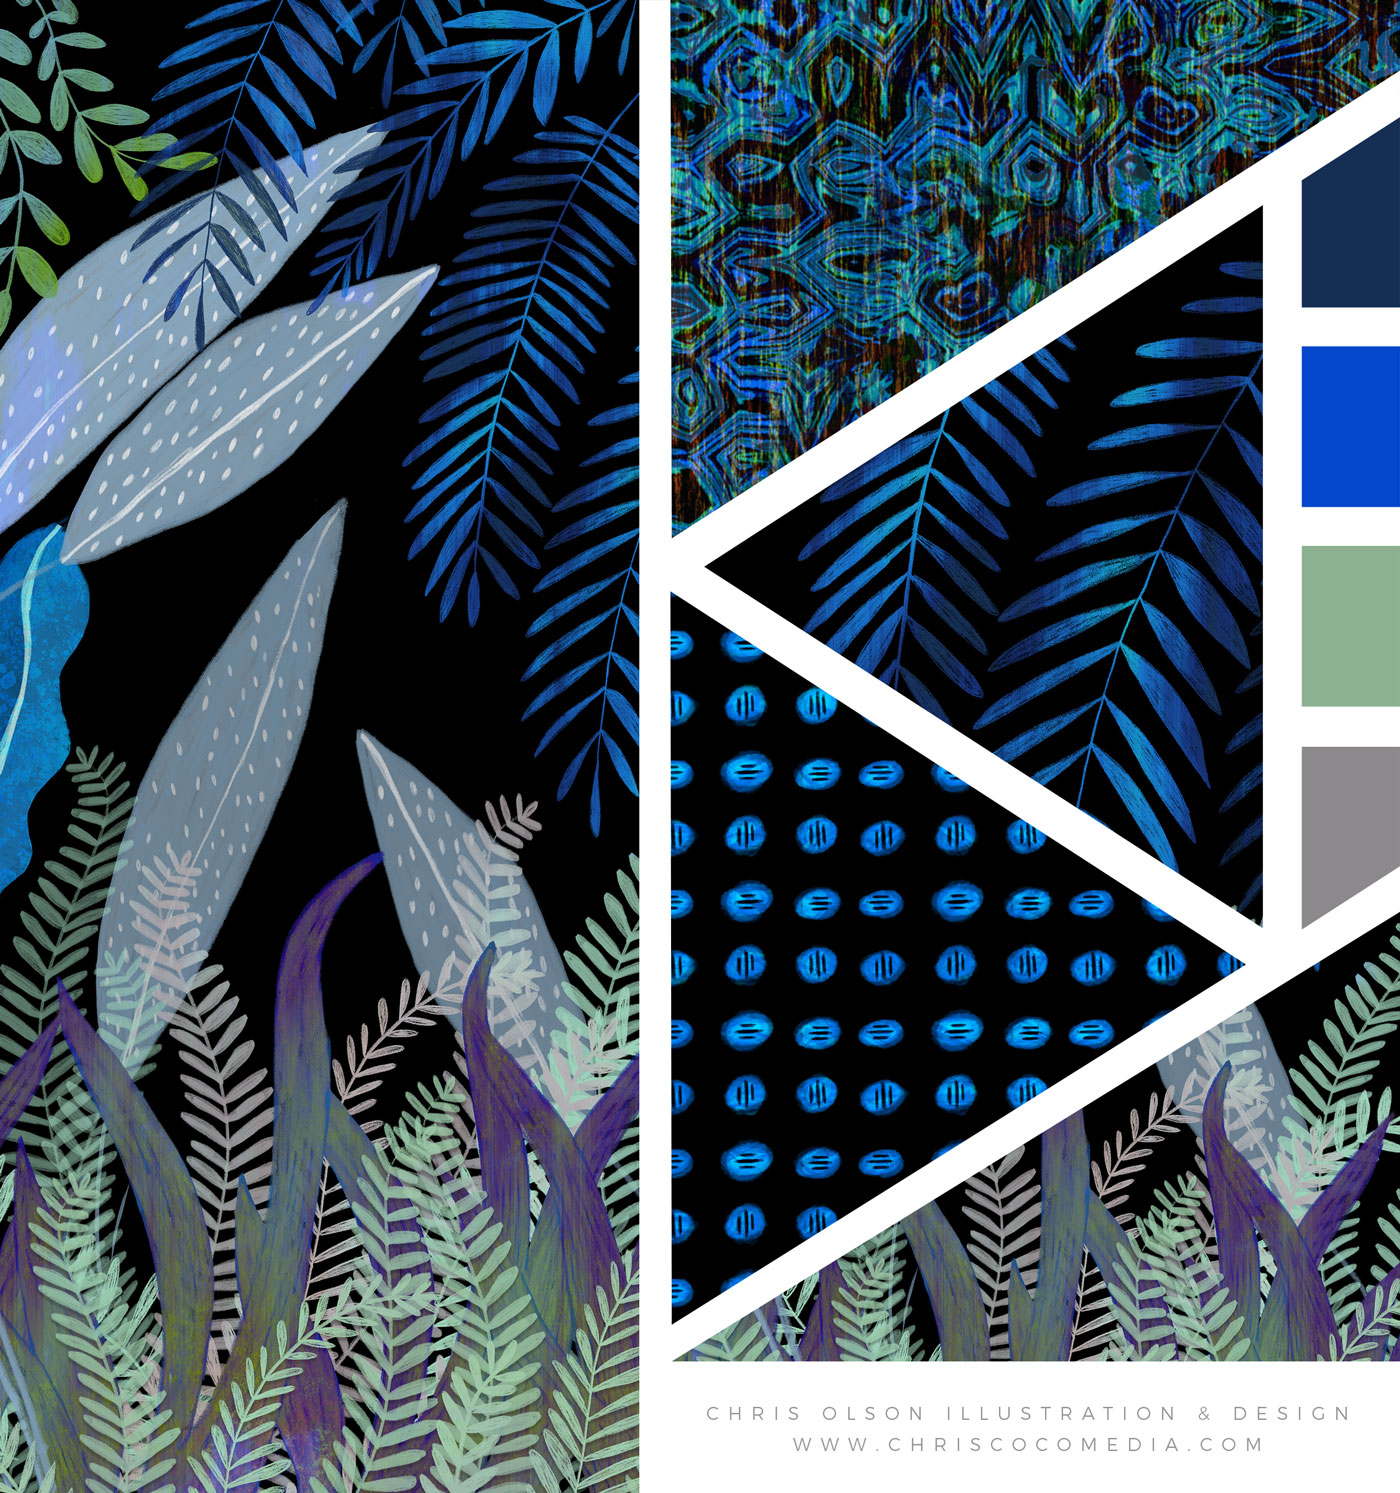 Tropical Botanical Print Collection by Chris Olson. This collection is featured on Pattern Observer.